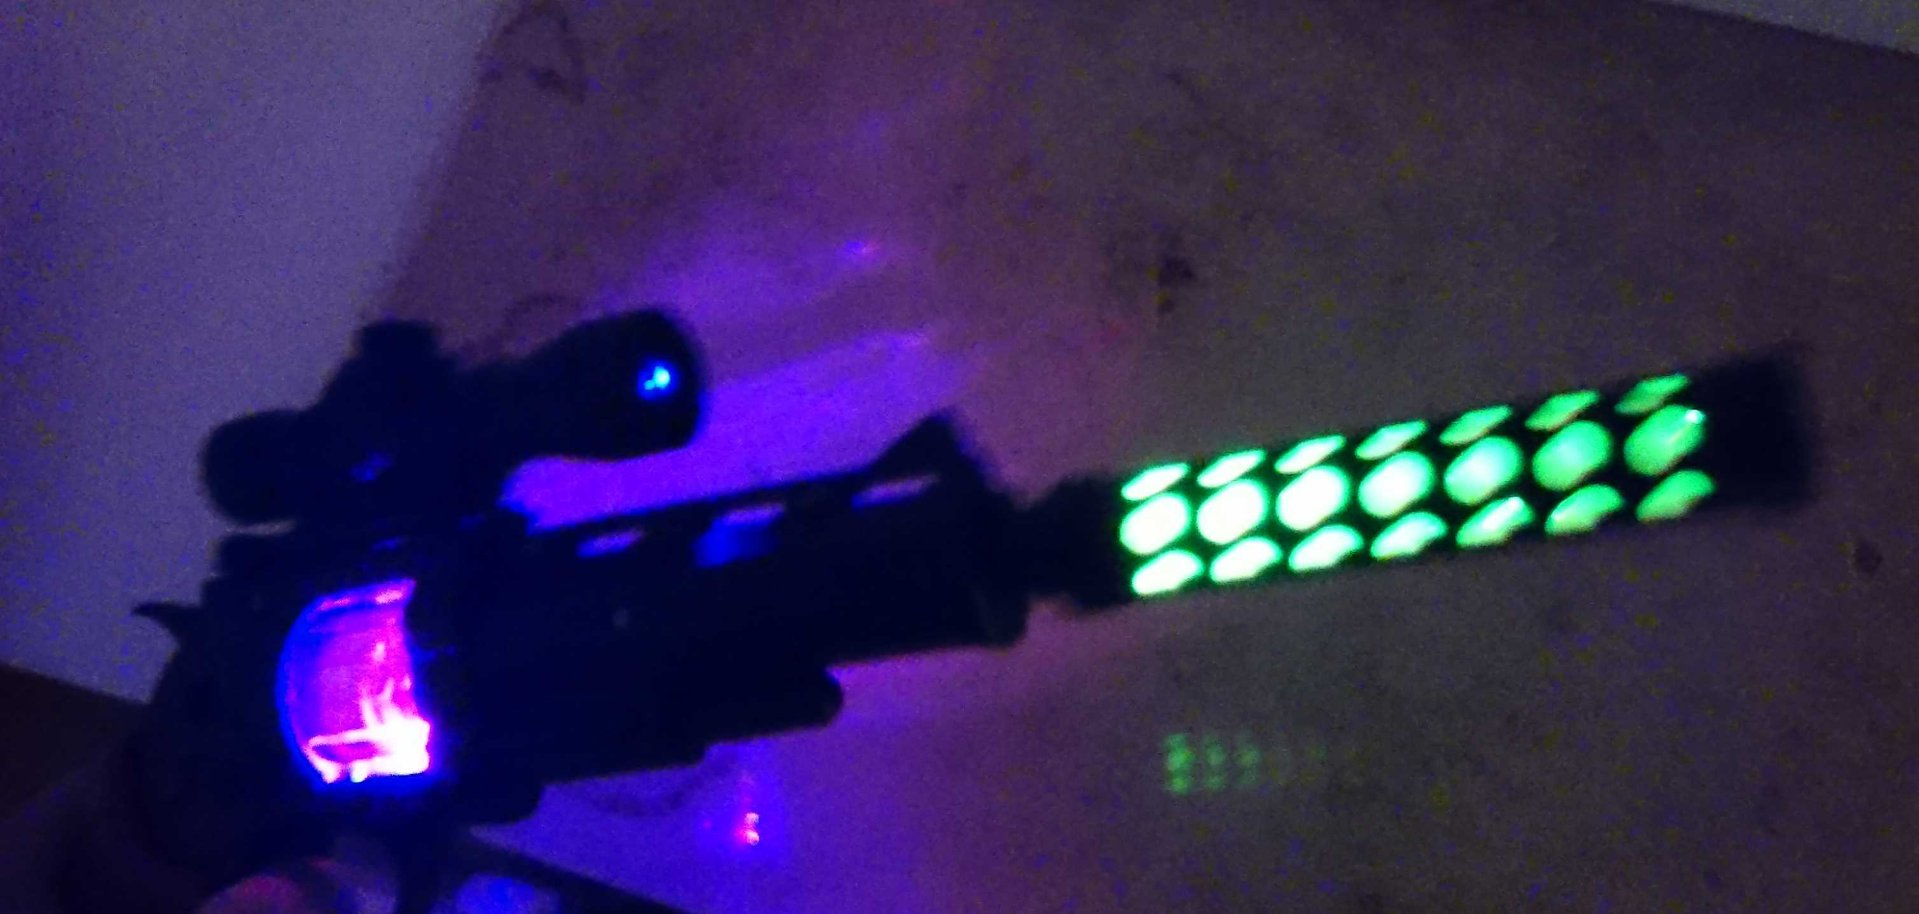 LED Laser Light Revolver Pistol Light And Sound Effects Space COLT ...